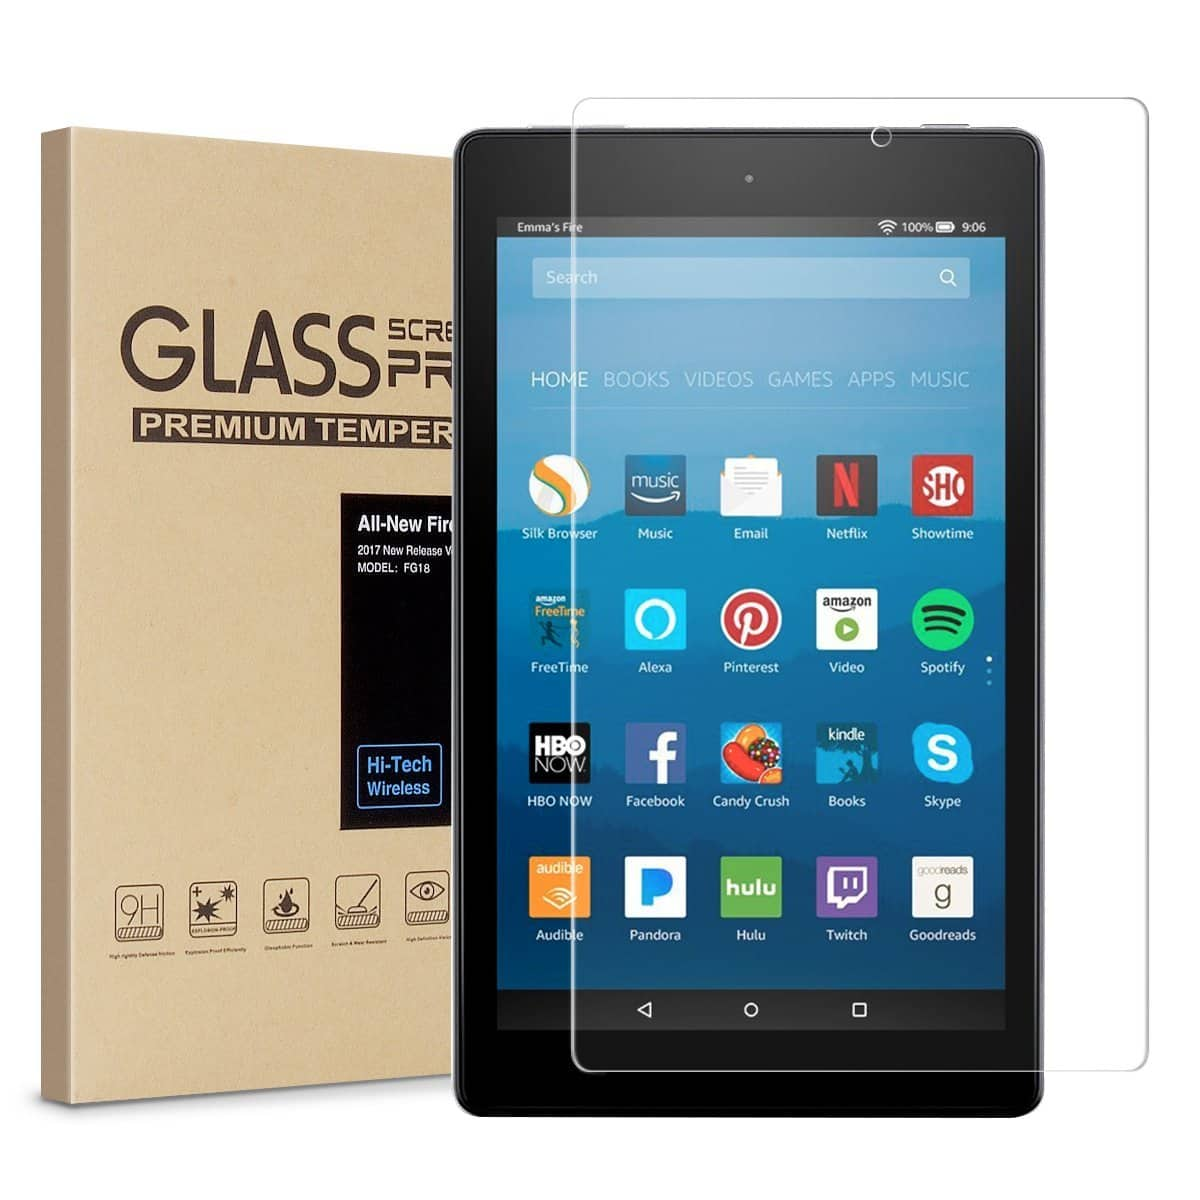 Accessories for All-New Fire 7 & HD 8 Tablet starting from $4.99 + Free Ship from USA